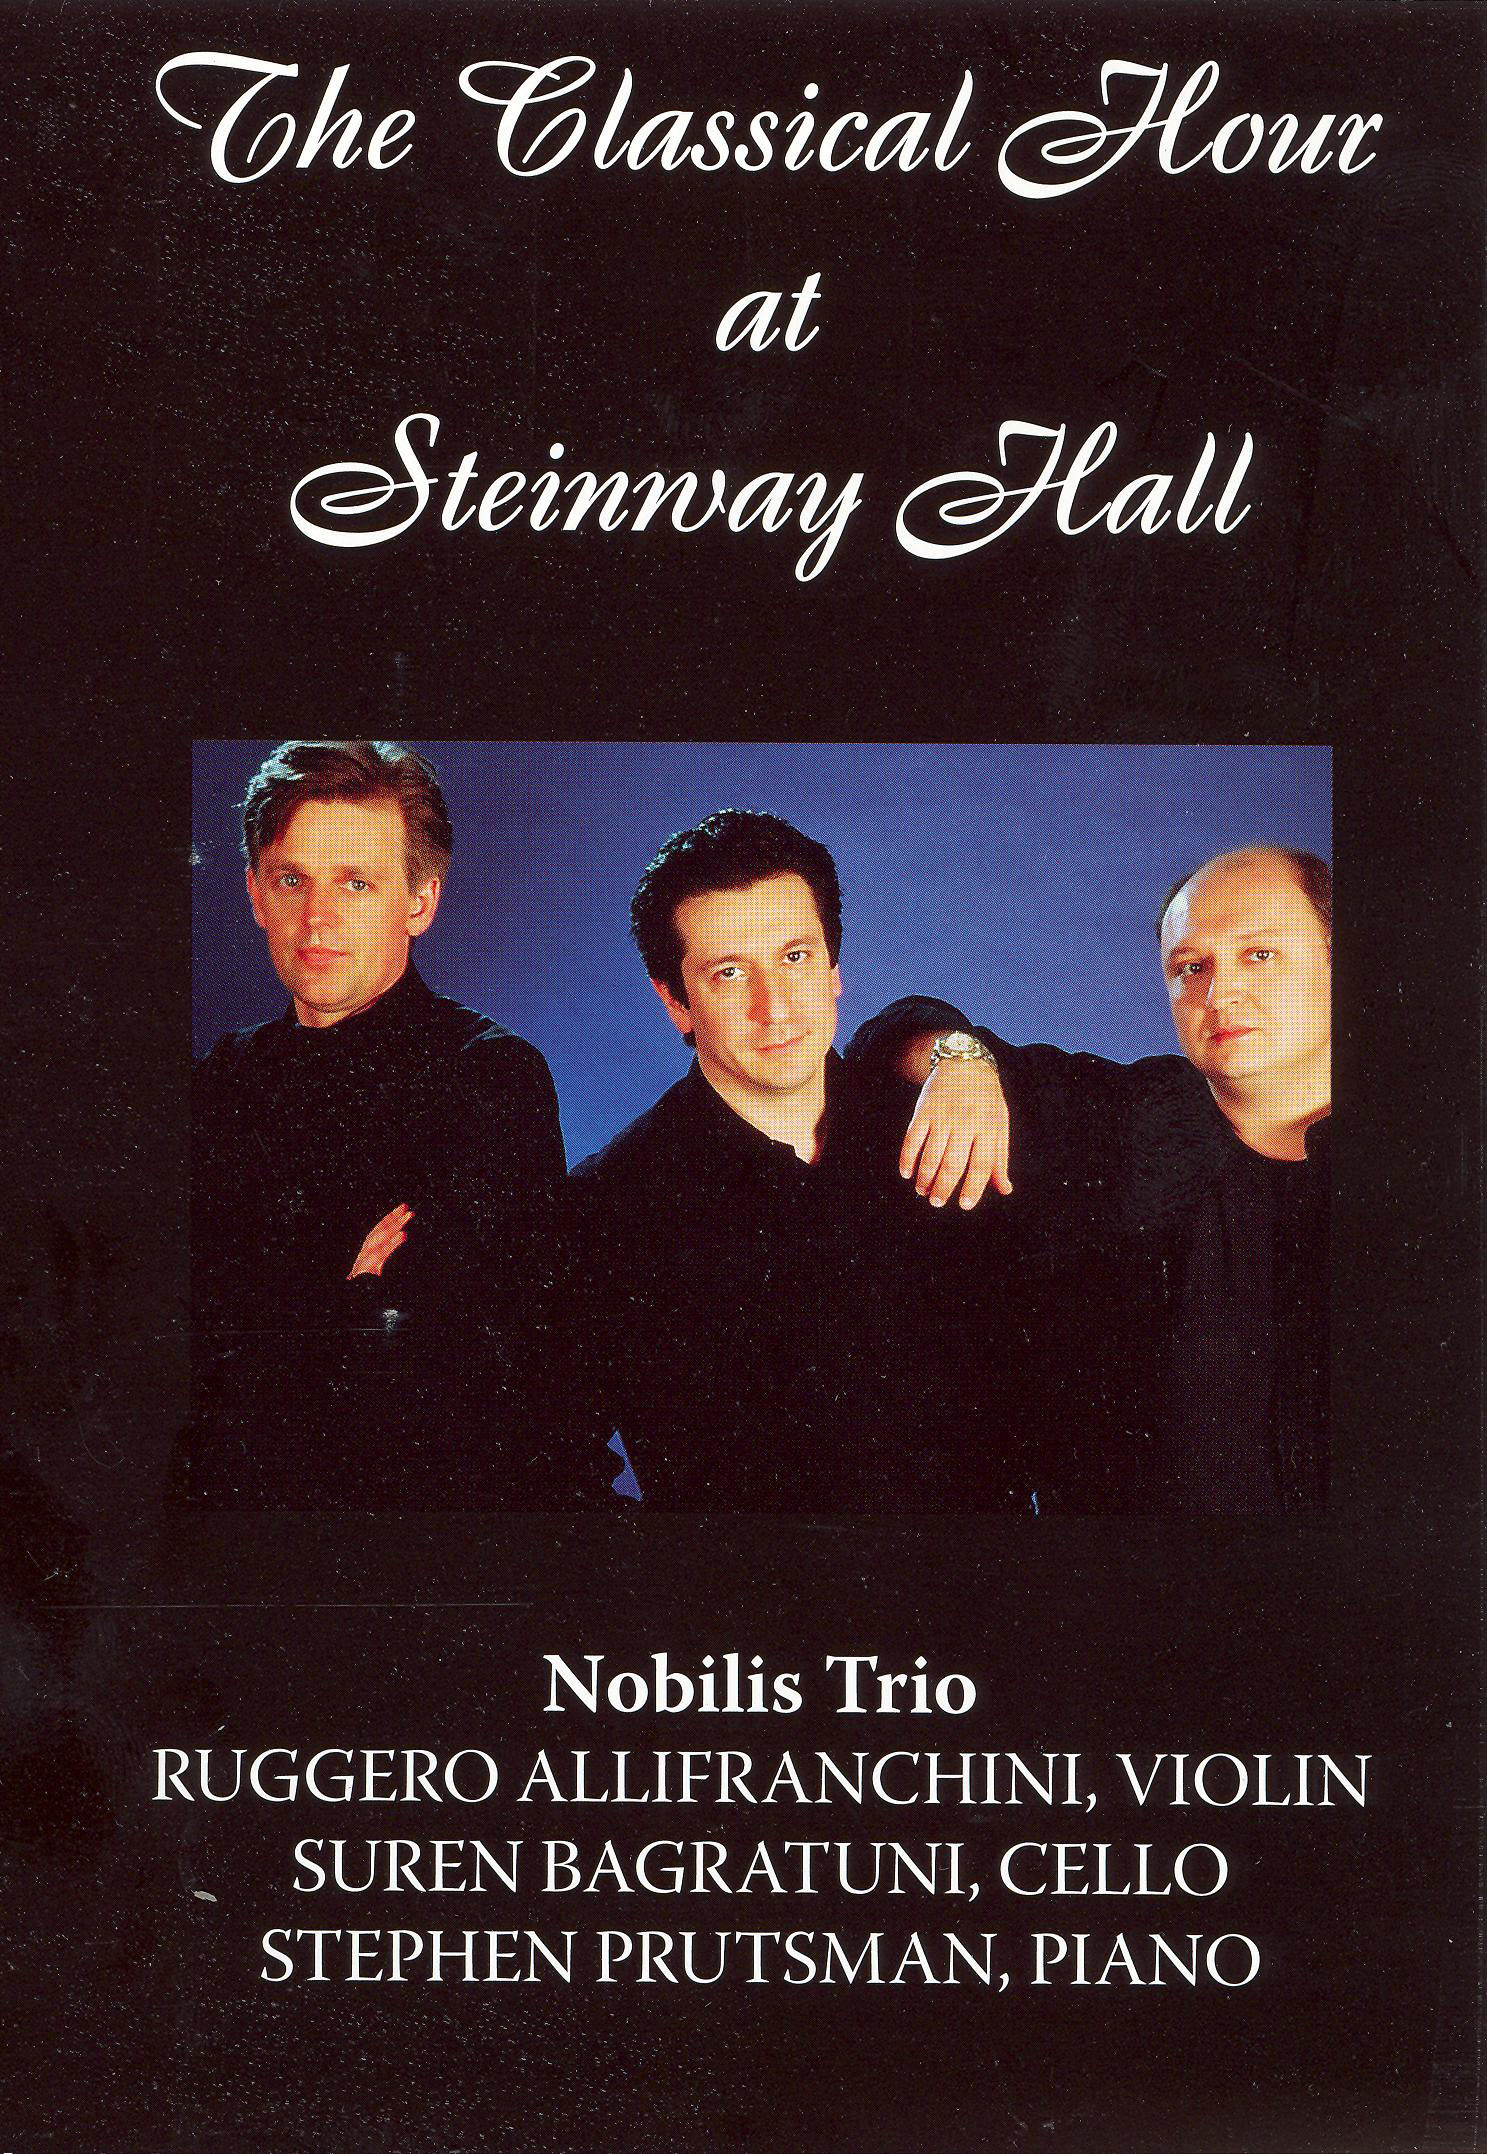 The Classical Hour at Steinway Hall: The Nobilis Trio